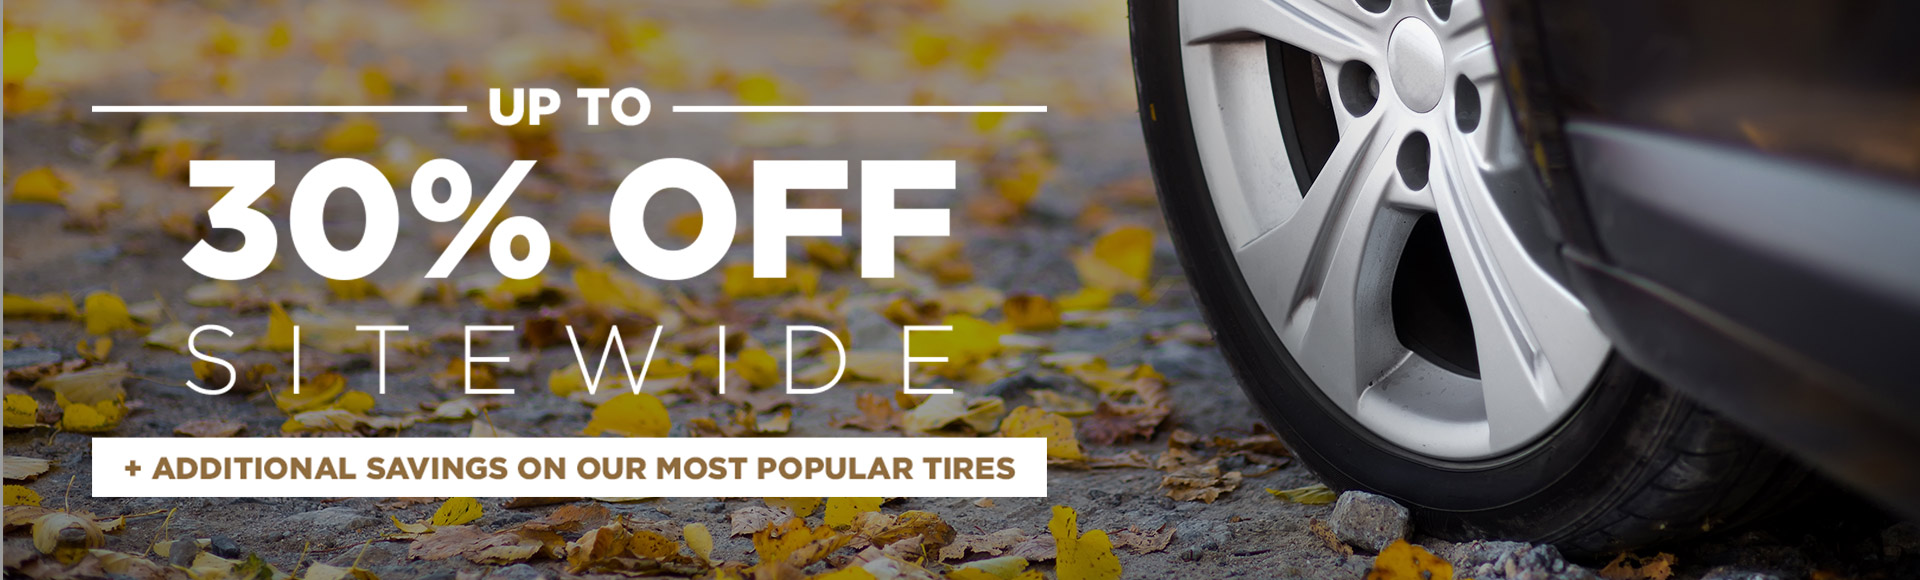 Up to 30% off sitewide plus additional savings on our most popular tires